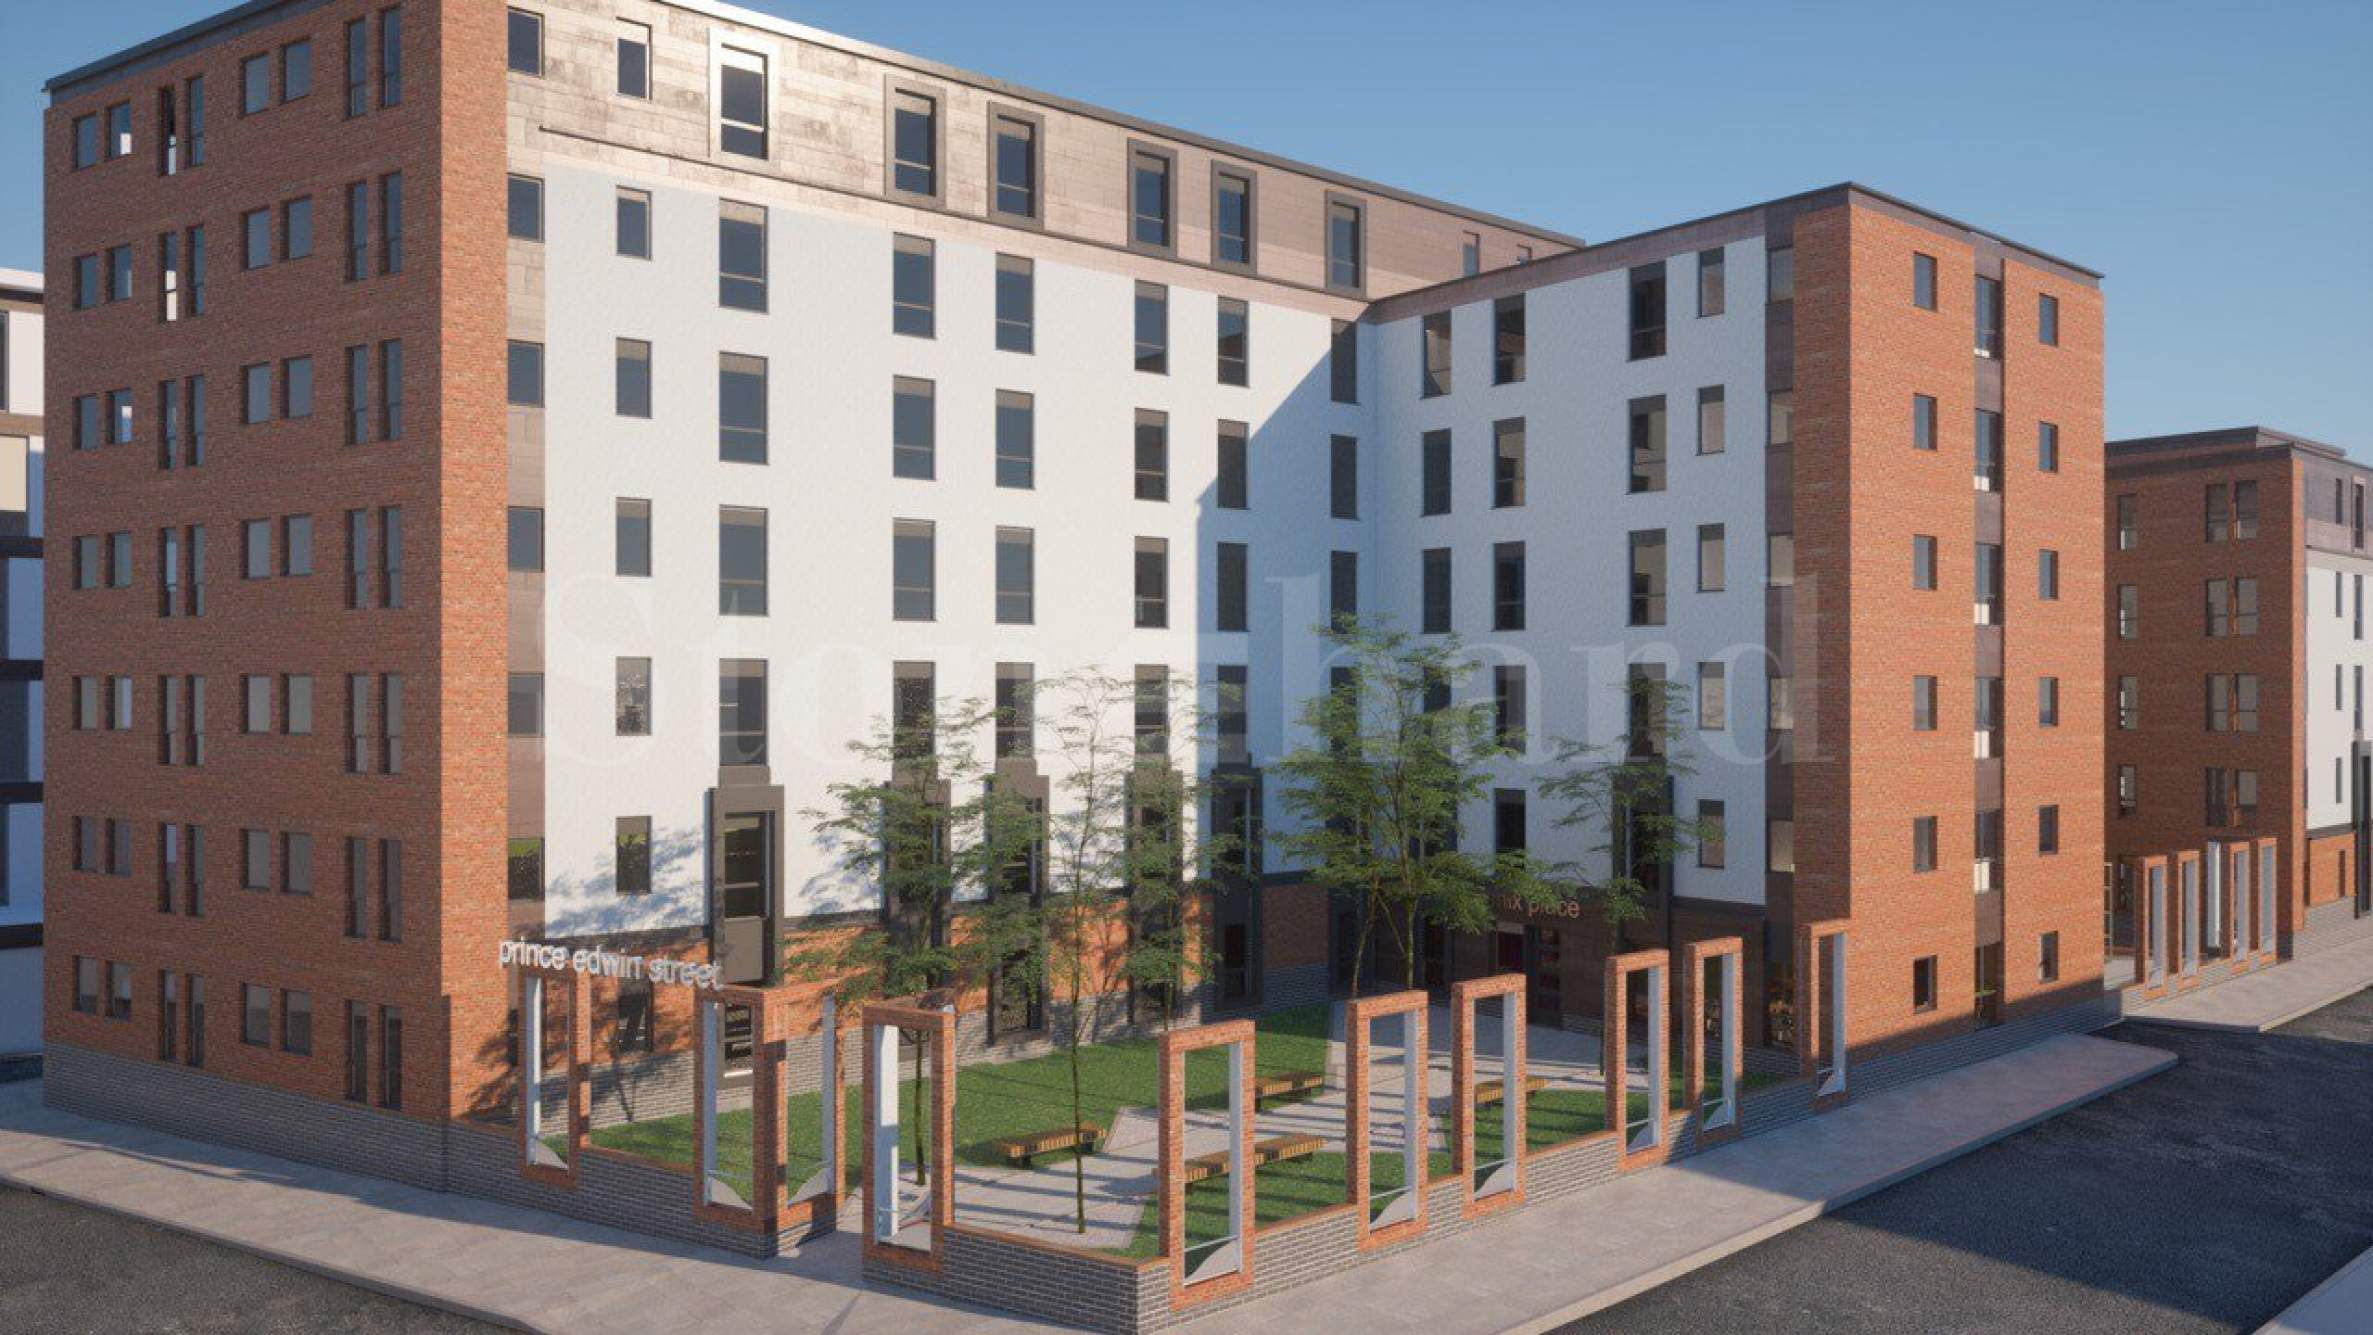 Purpose built student accommodation with high net yield1 - Stonehard